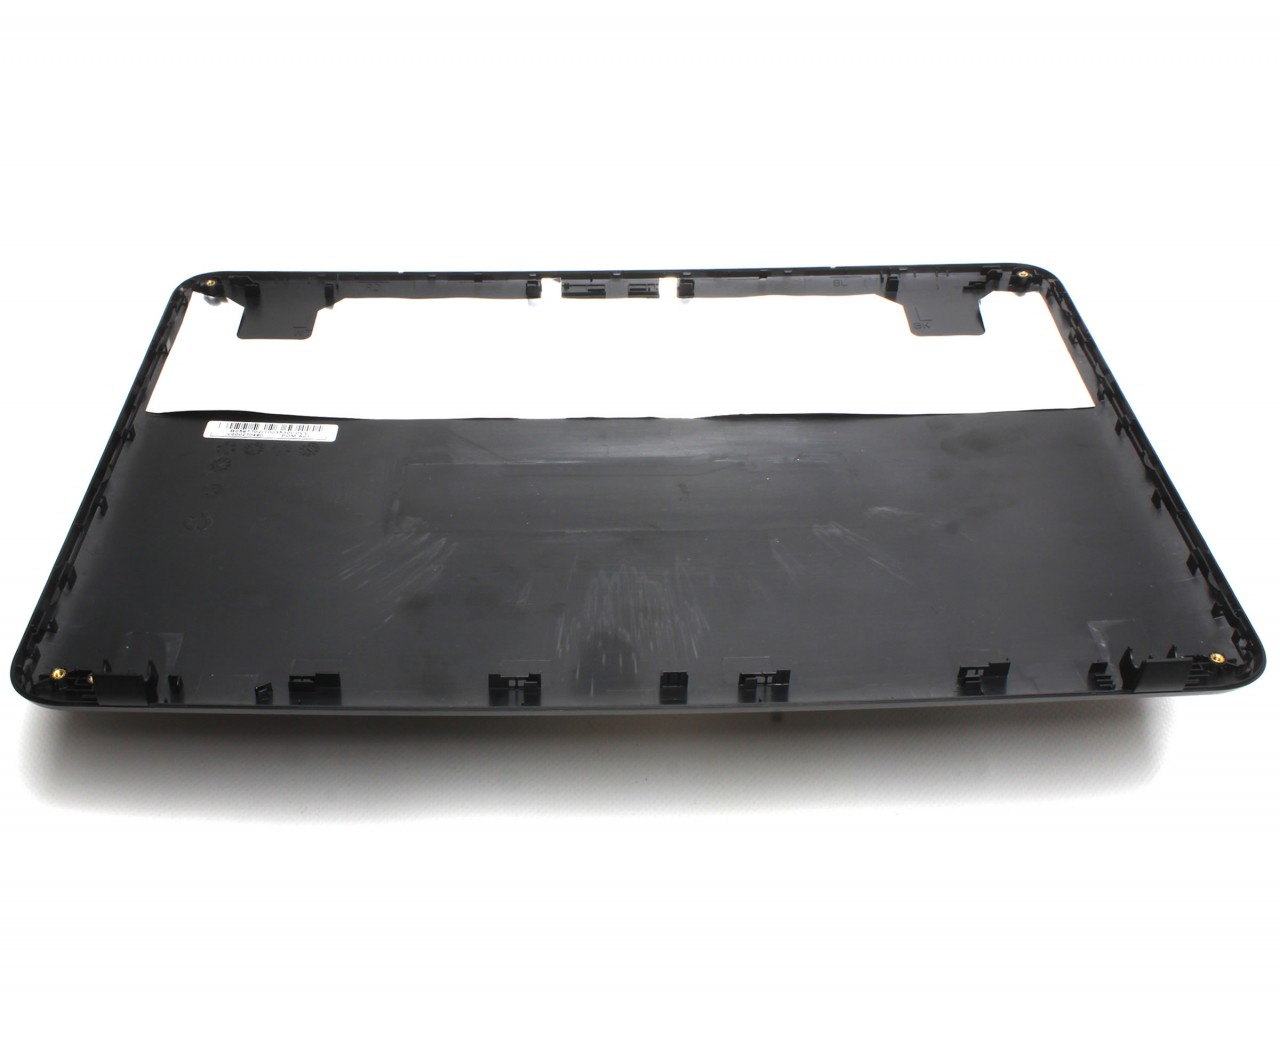 Capac Display BackCover Toshiba Satellite L855 Carcasa Display Neagra cu 2 Suruburi Balamale imagine powerlaptop.ro 2021